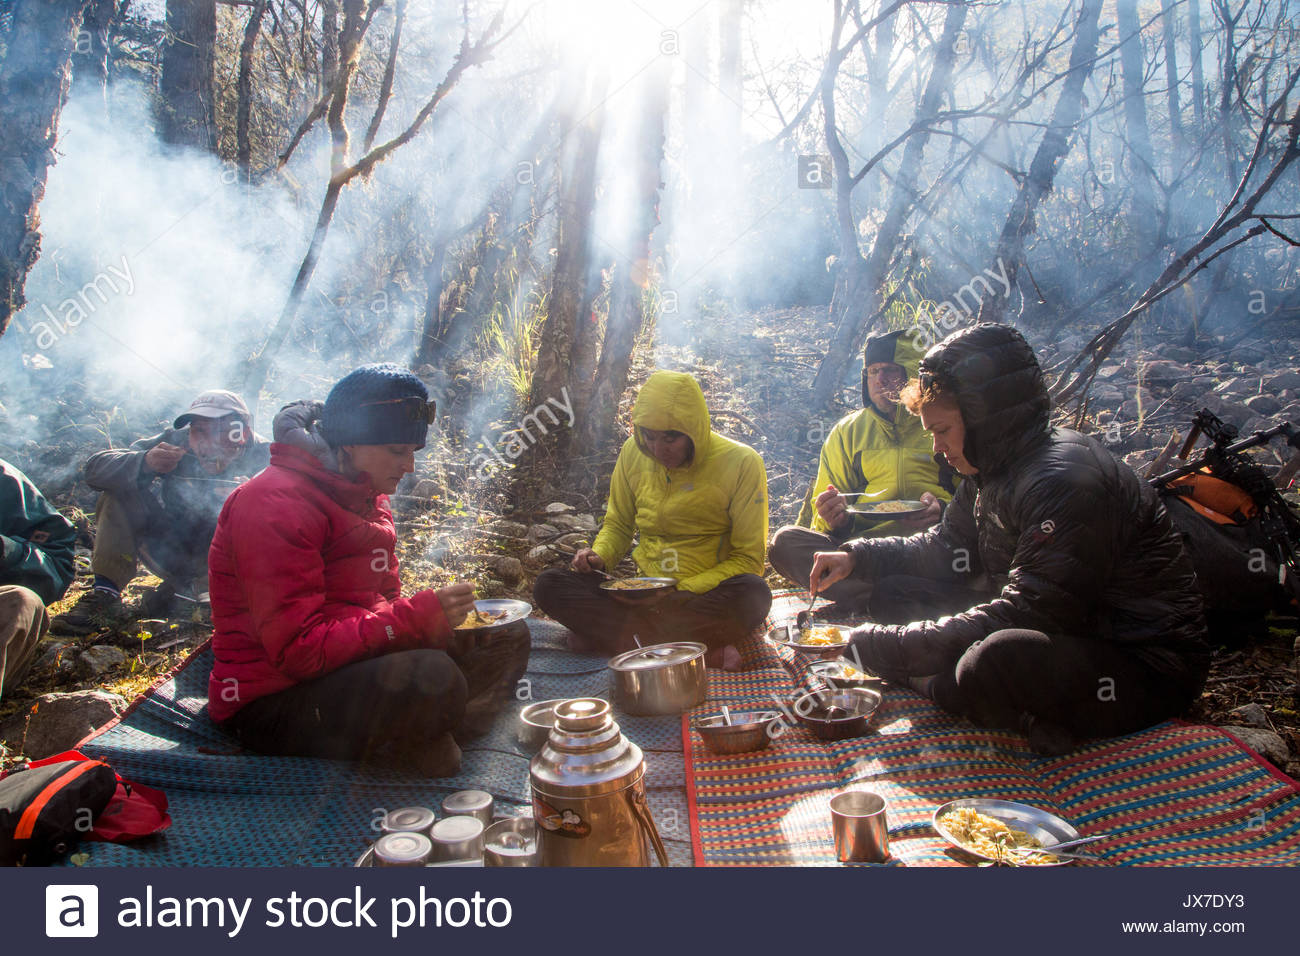 Expedition members sit around a campsite eating food. - Stock Image